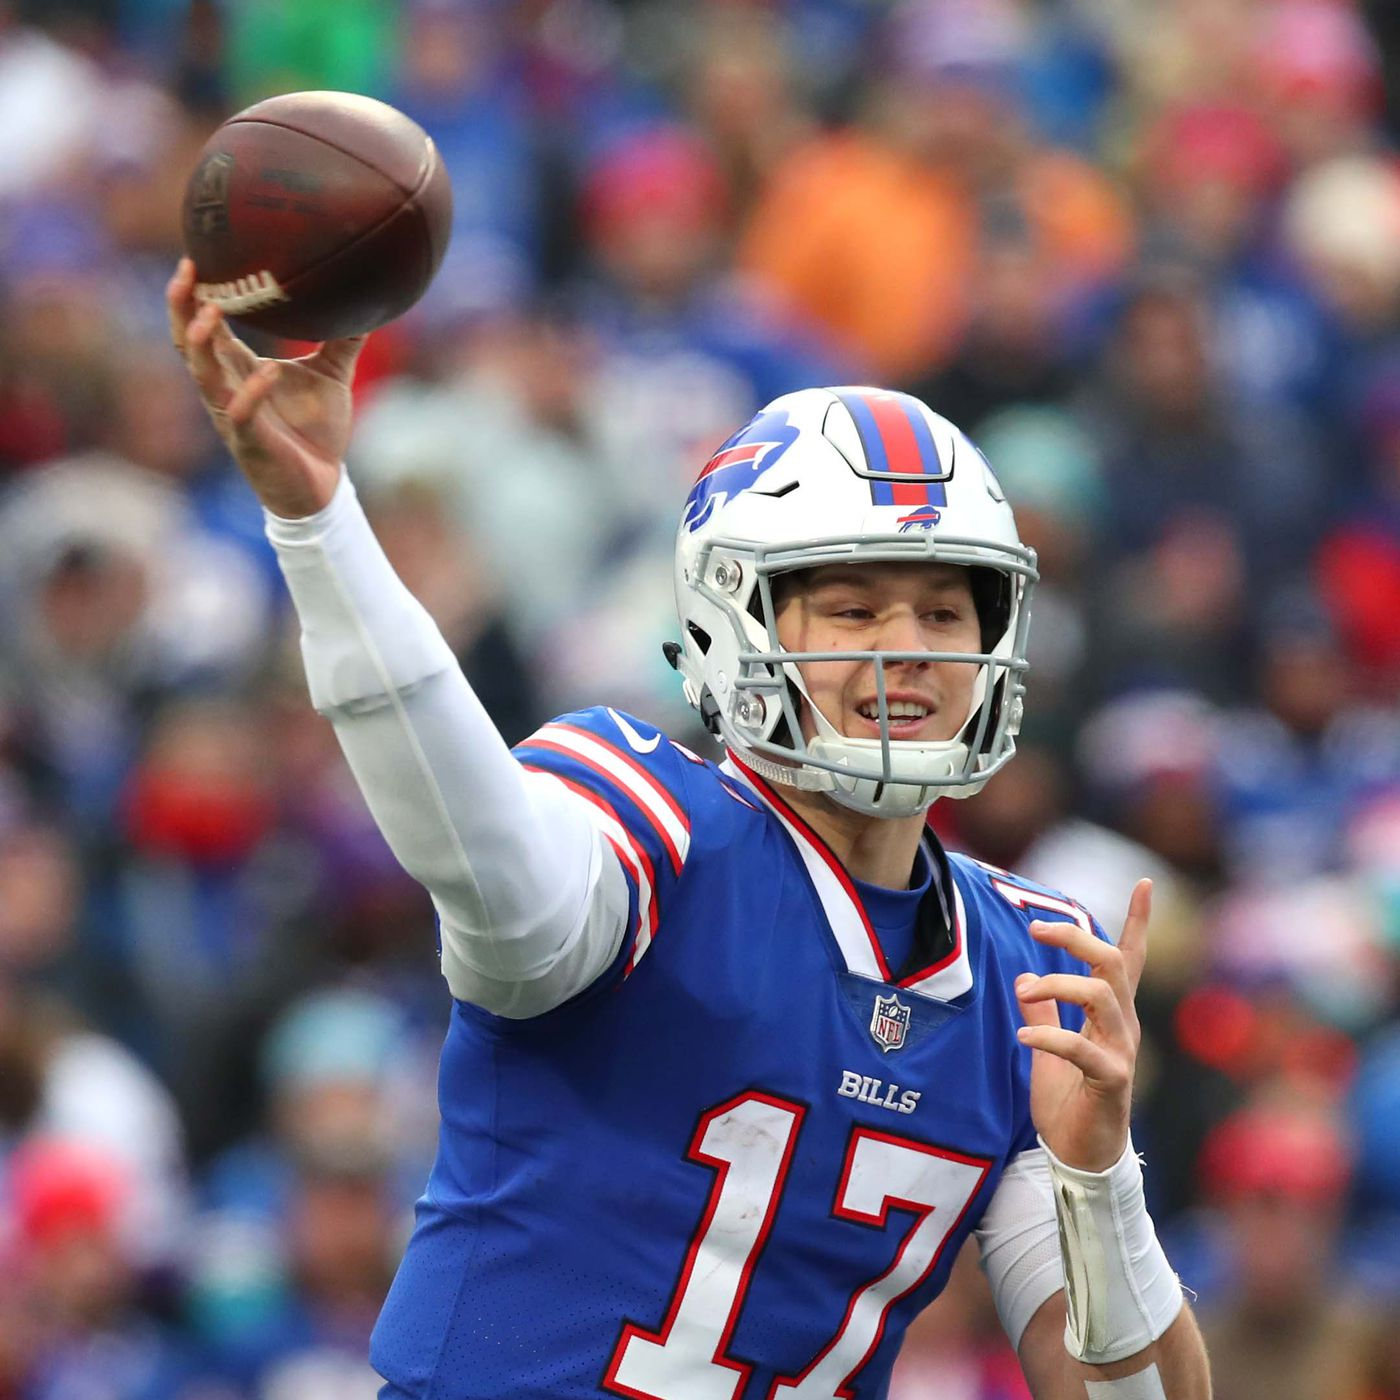 b51c4e2846c Who has the strongest arm in the NFL: Josh Allen challenges Patrick Mahomes  to see who can throw a football farther - Buffalo Rumblings